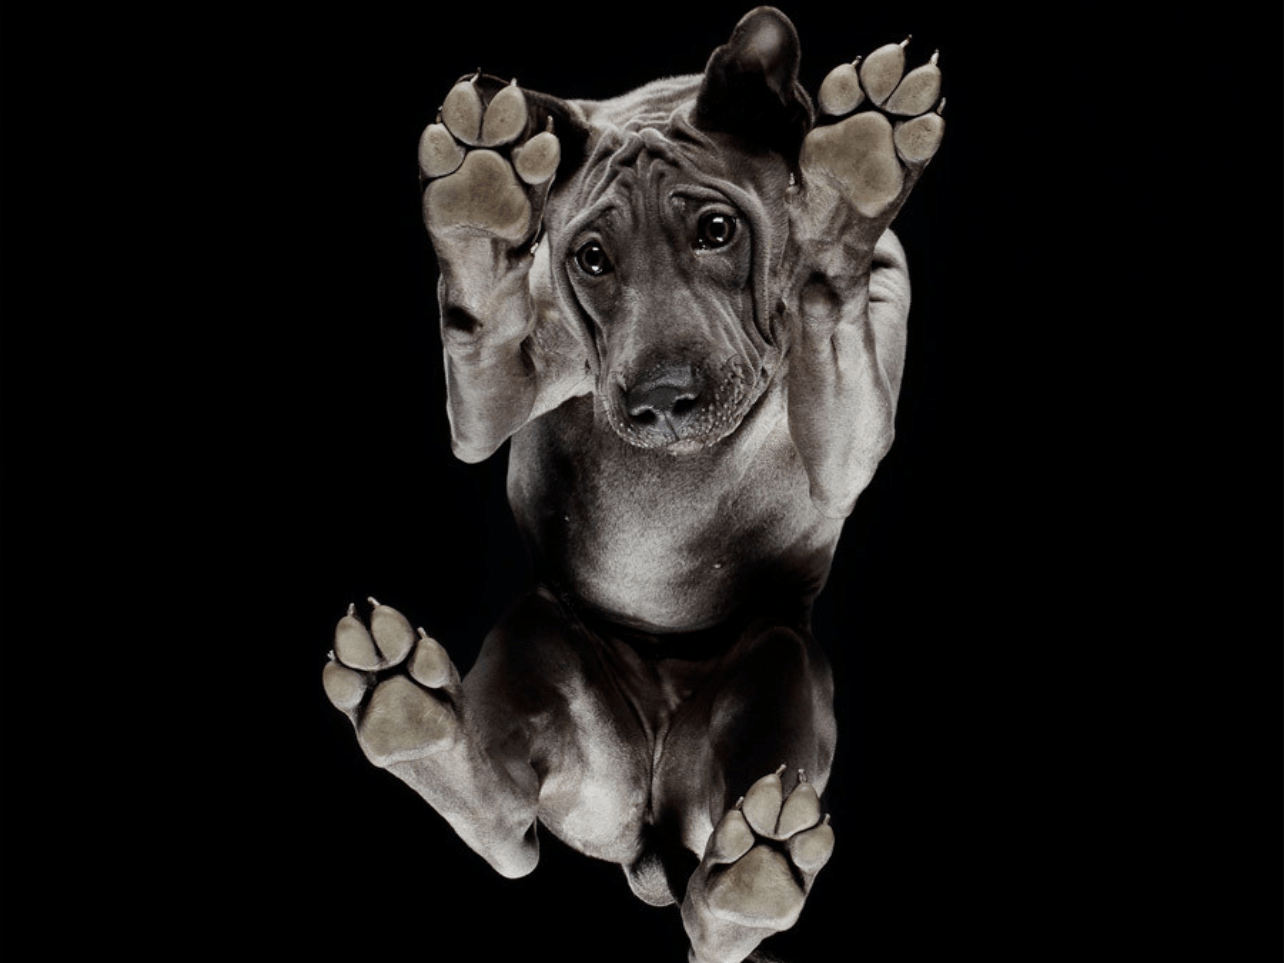 Photographing Animals From Below